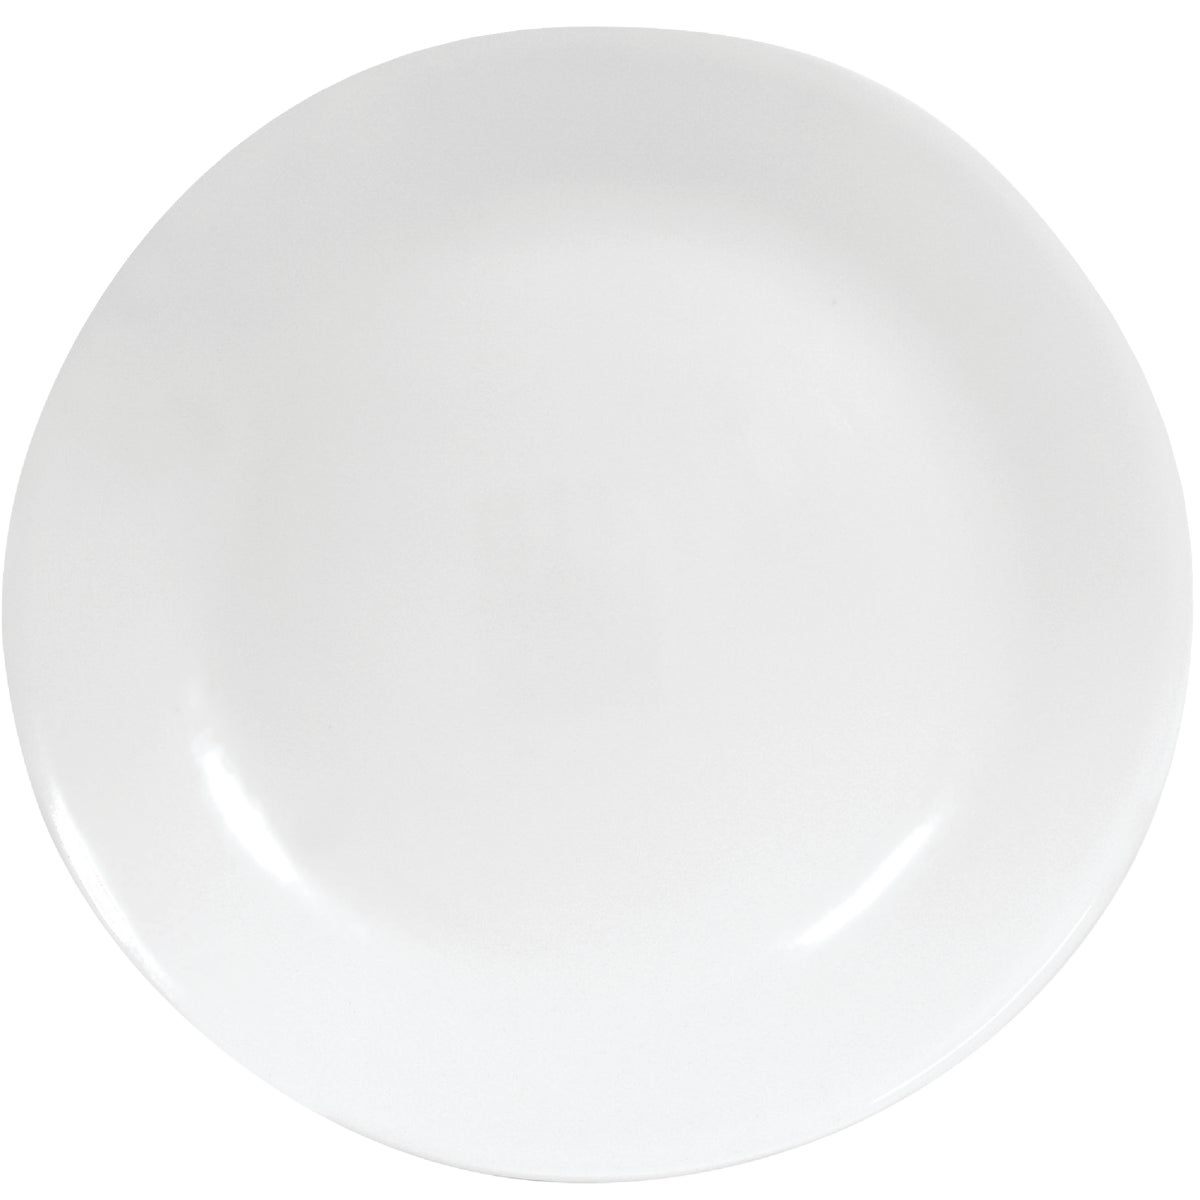 LARGE WHITE DINNER PLATE - 6003893 by World Kitchen